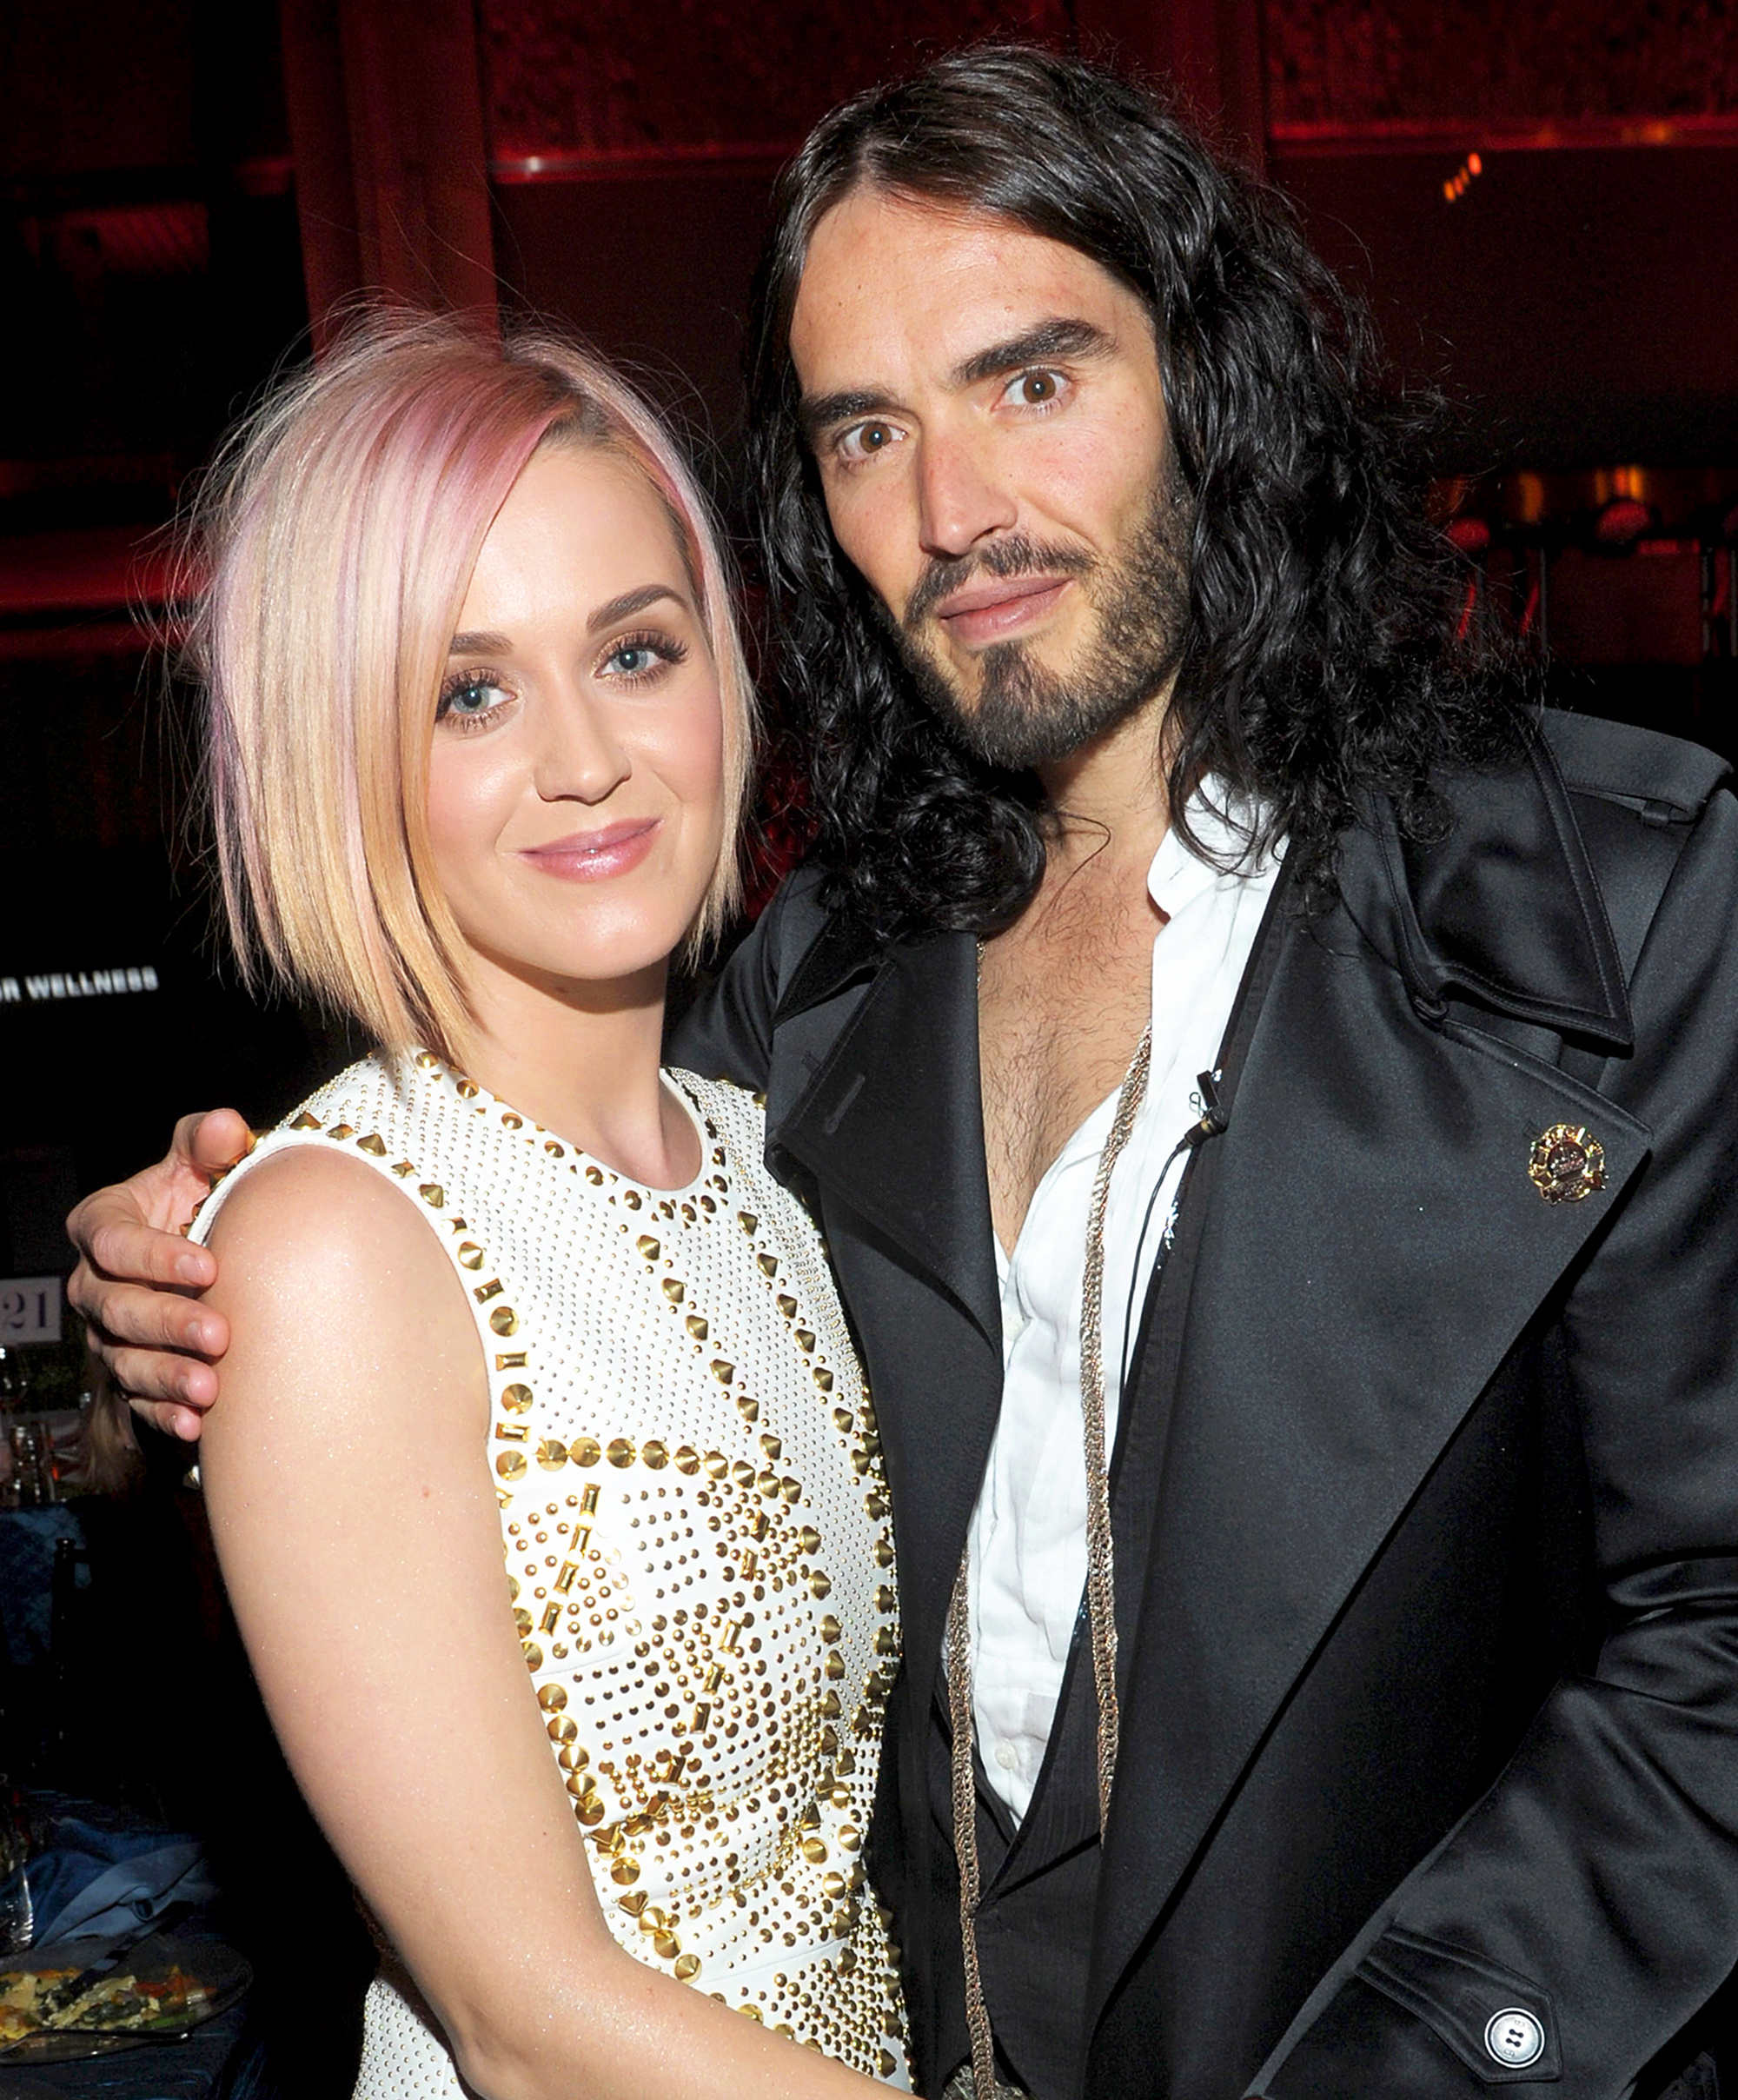 Who is katy perry dating